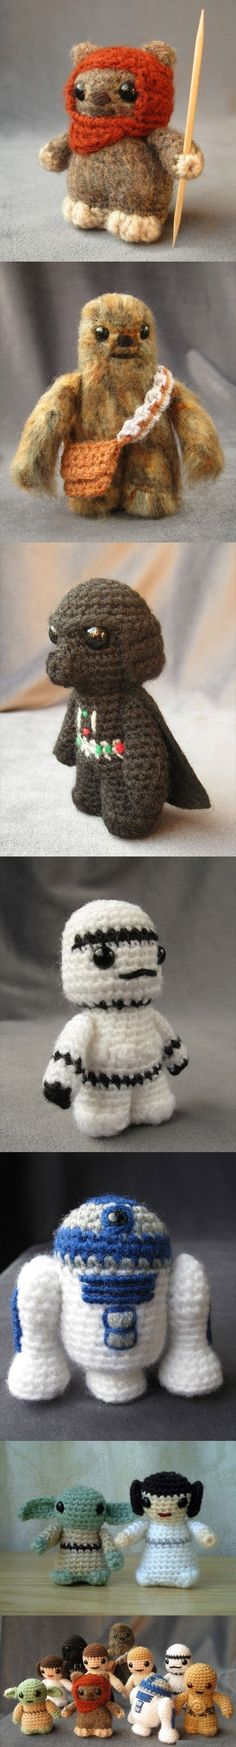 @Beth Bradford and @Linnie Scott ... is it weird that these make me think of you?